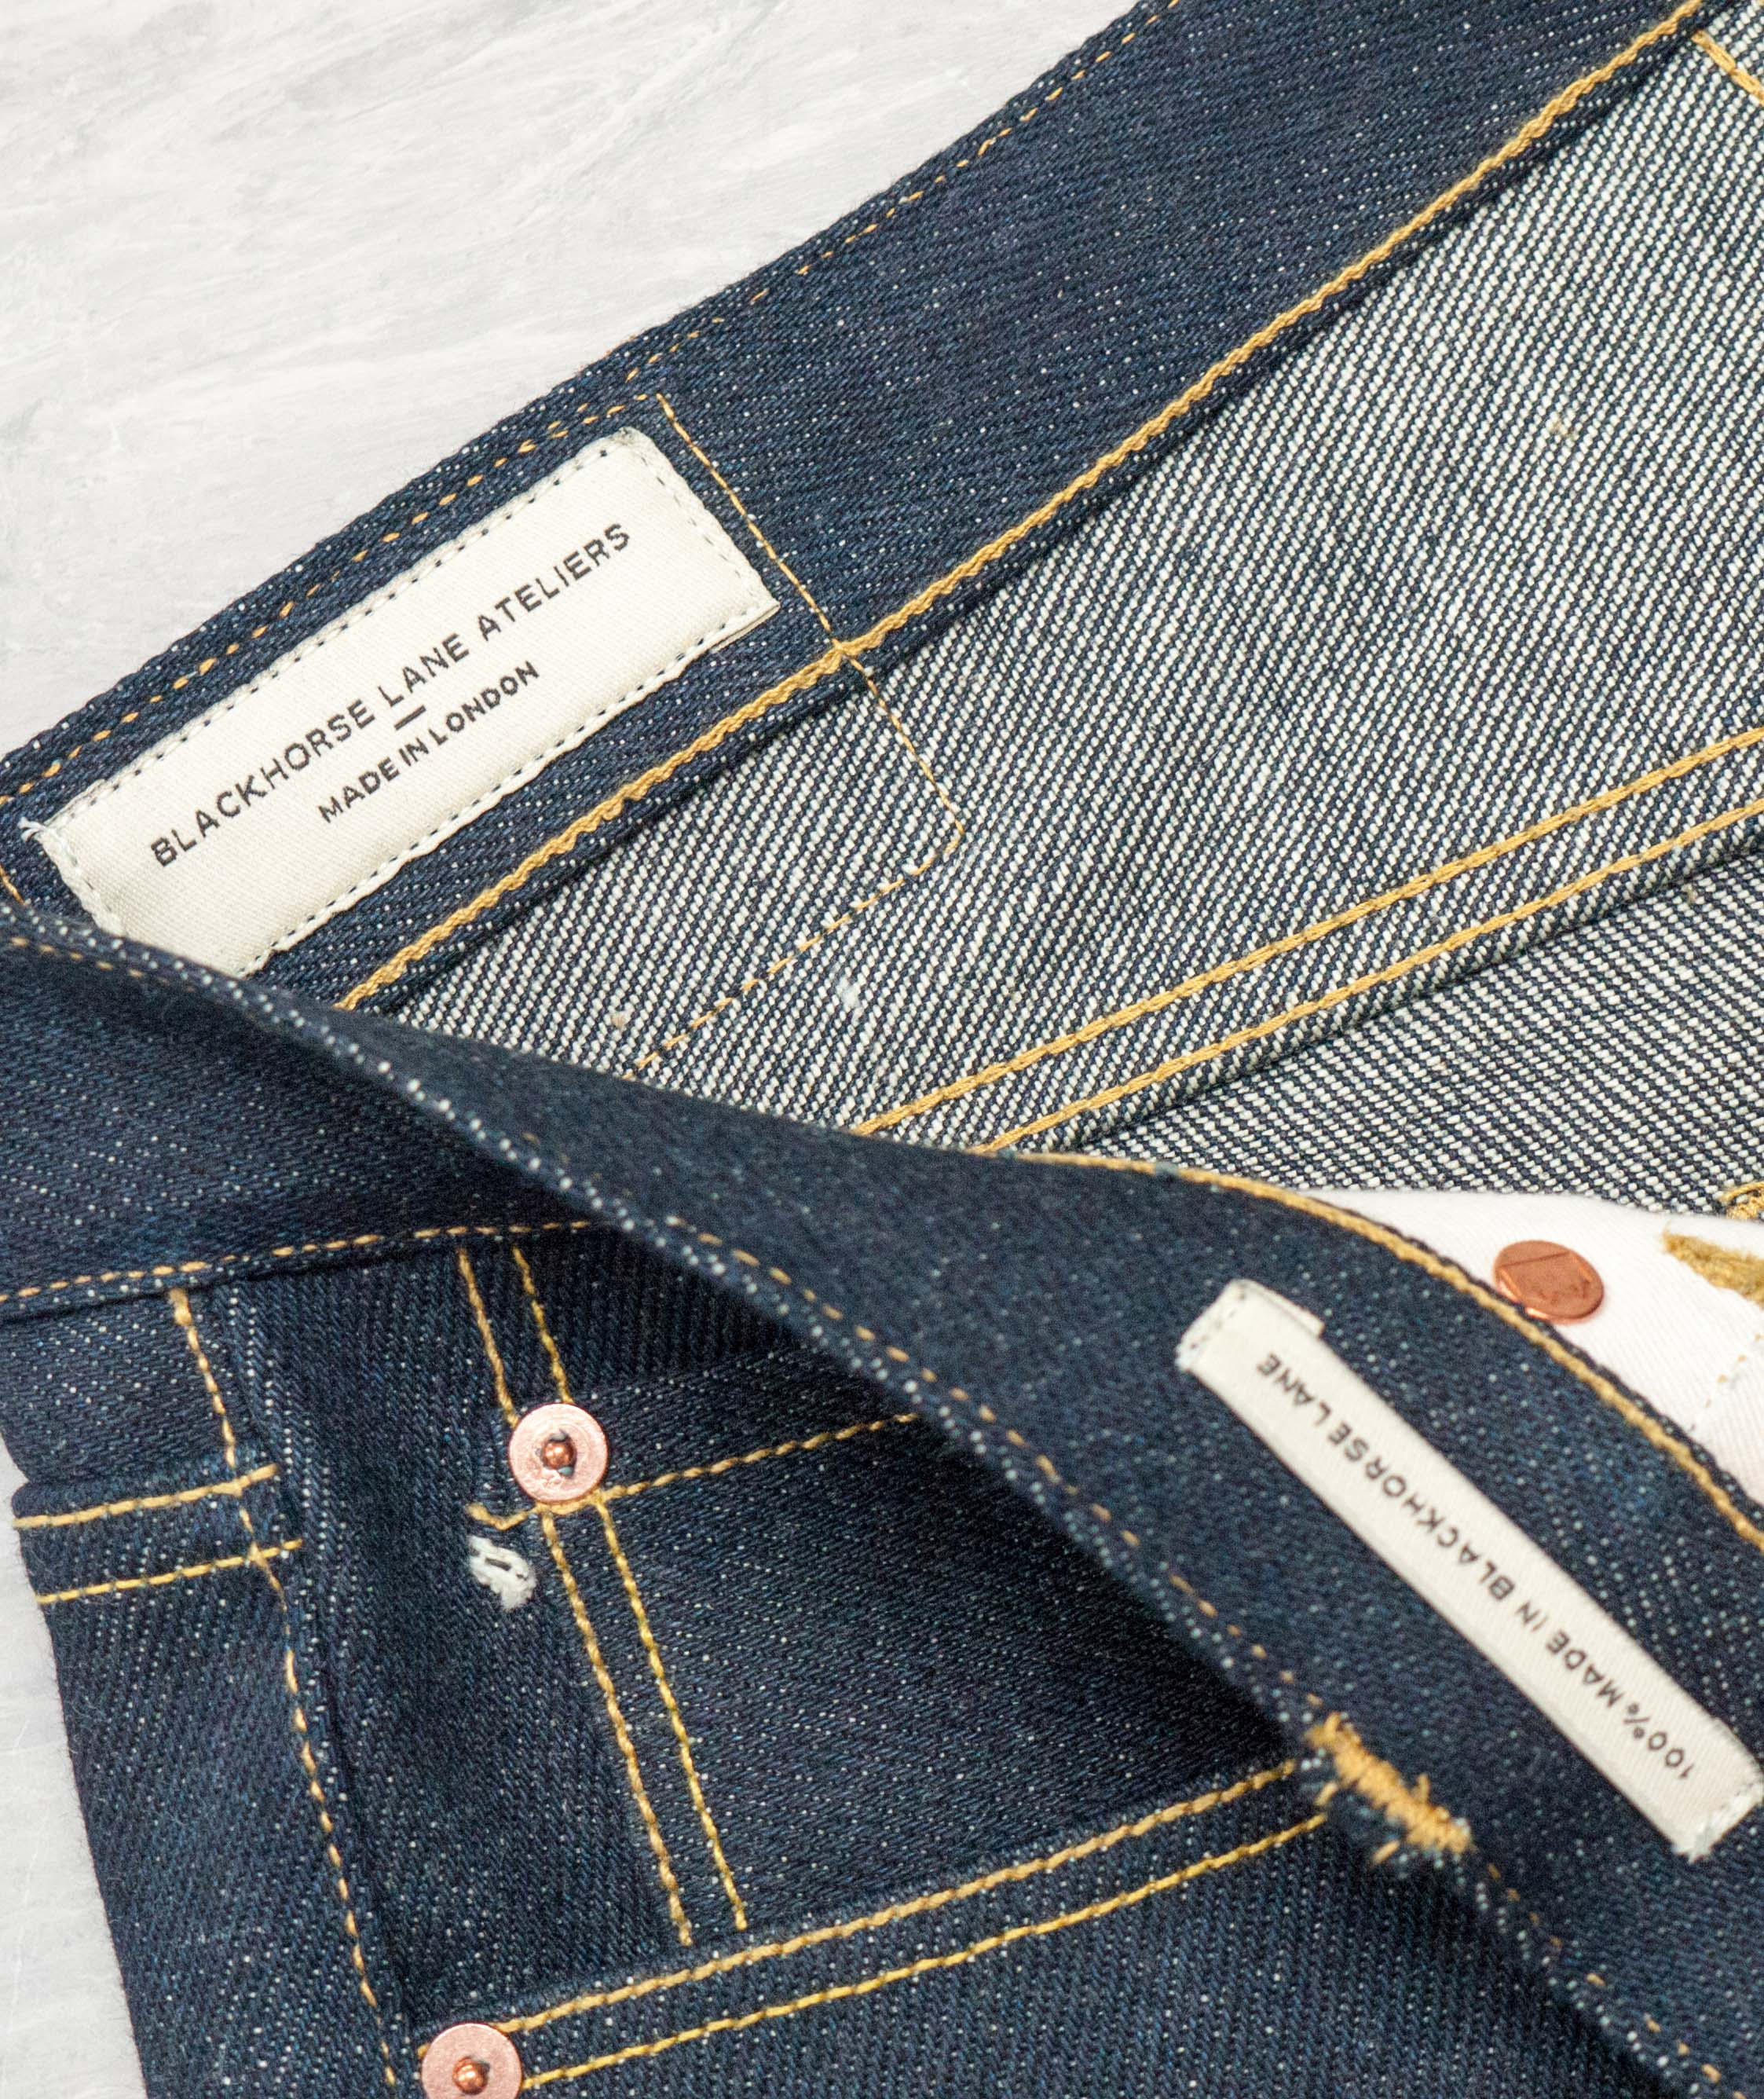 560e73450b8 Verdict  The Most Durable Jeans Brand in the World